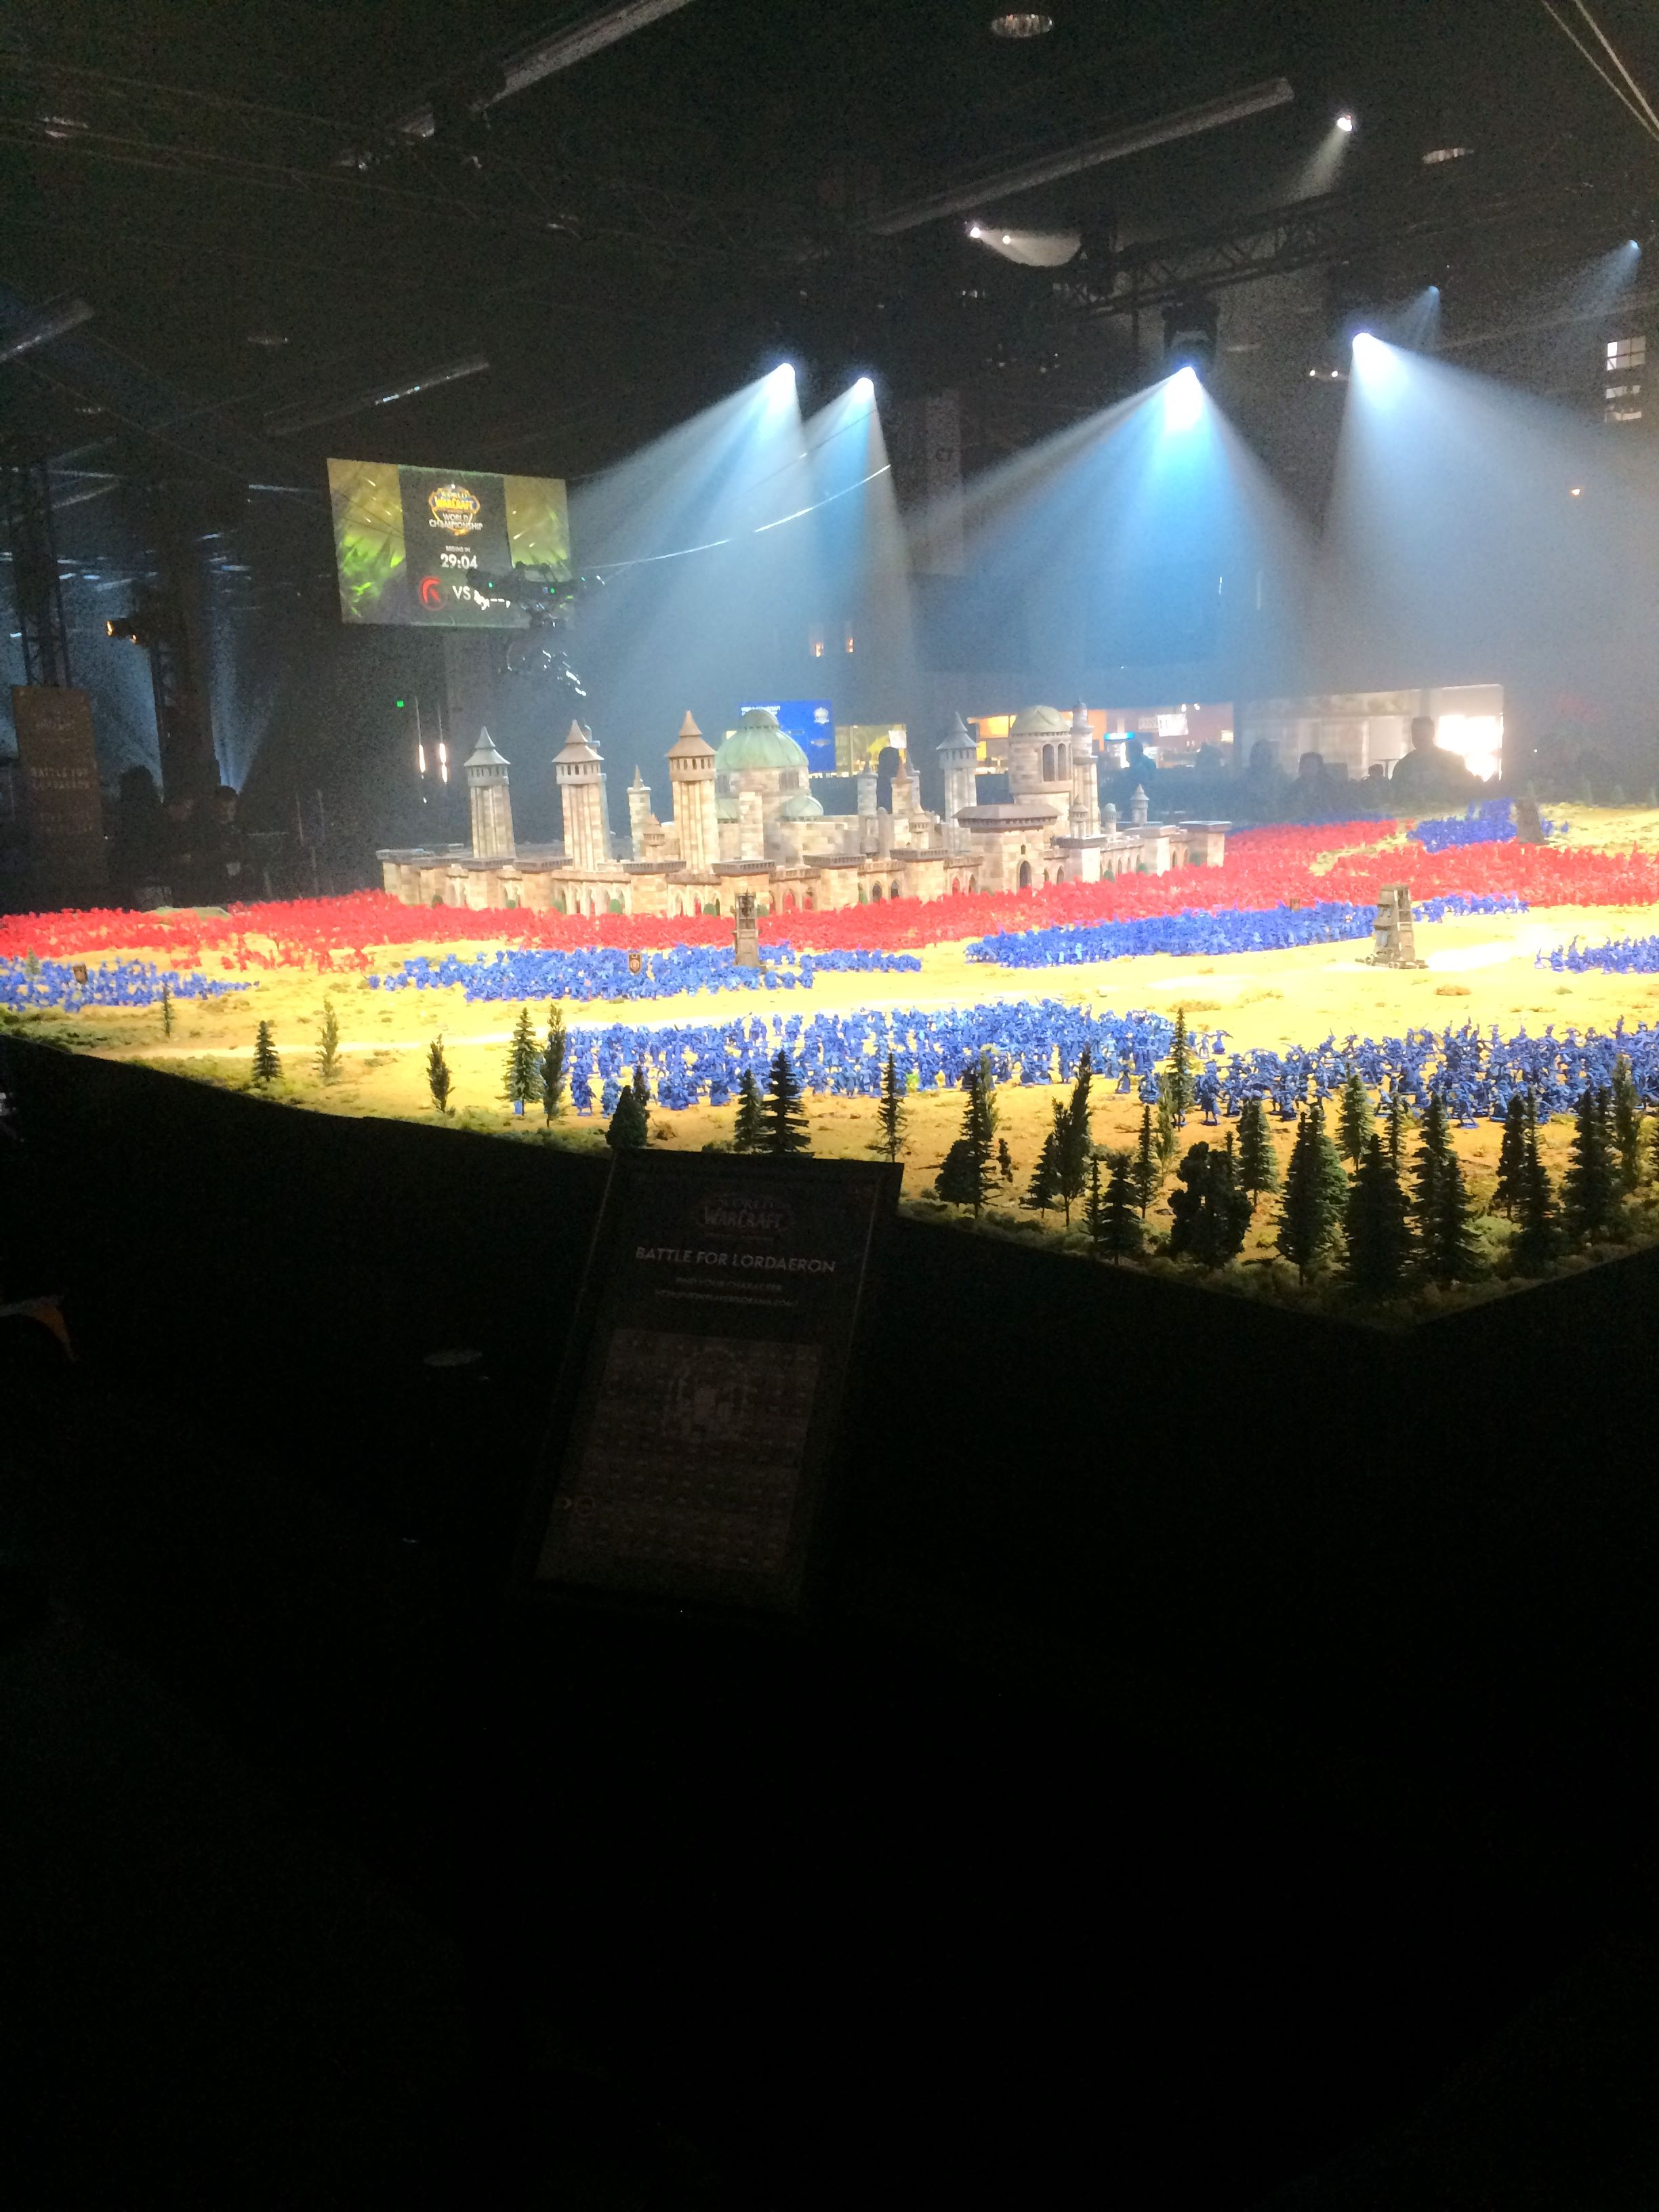 World of Warcraft: Battle for Azeroth - Battle for Lordaeron diorama at BlizzCon 2017.